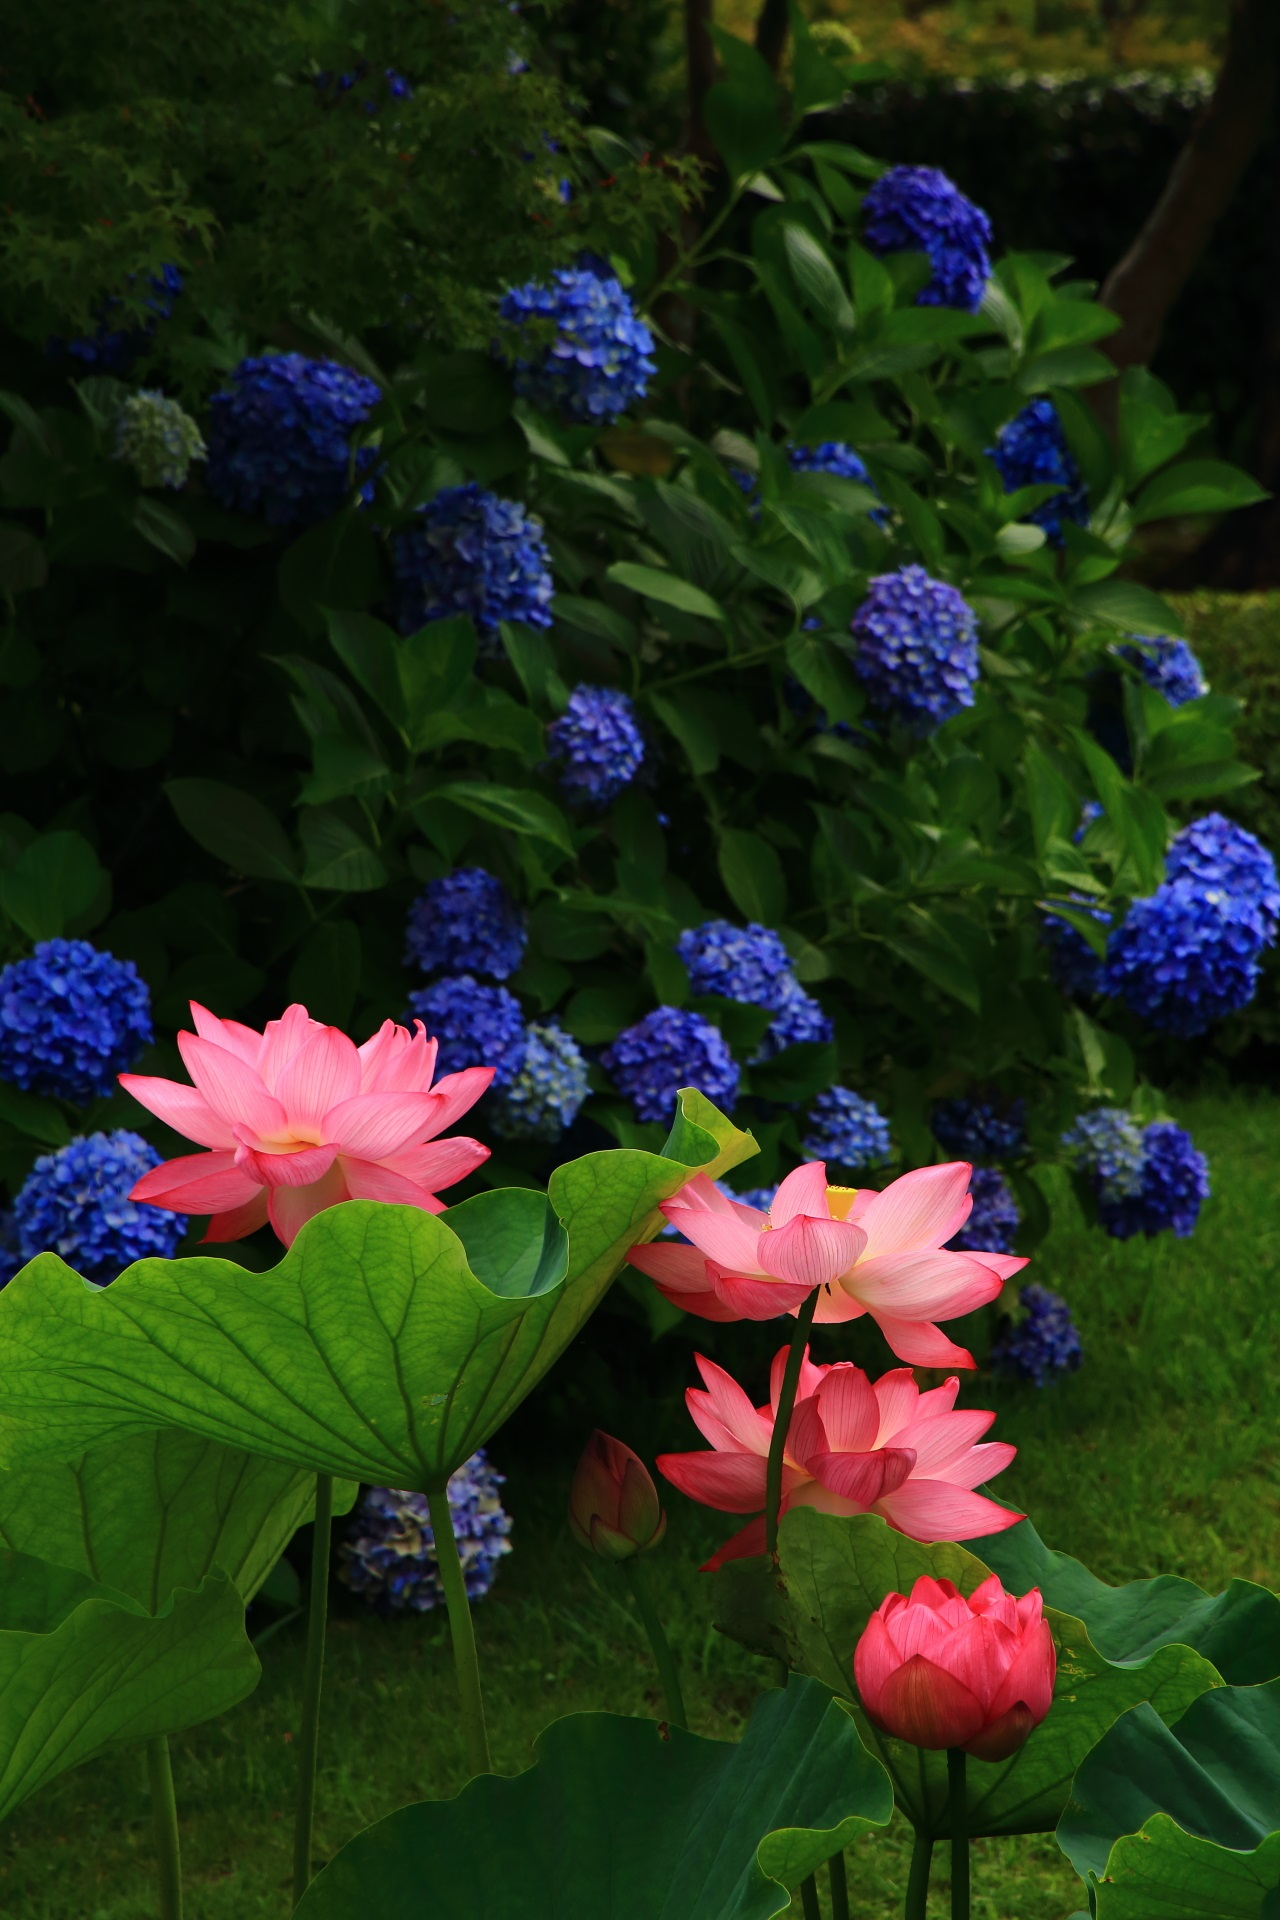 Collaboration of lotus flower and hydrangea at Toji-Temple in Kyoto